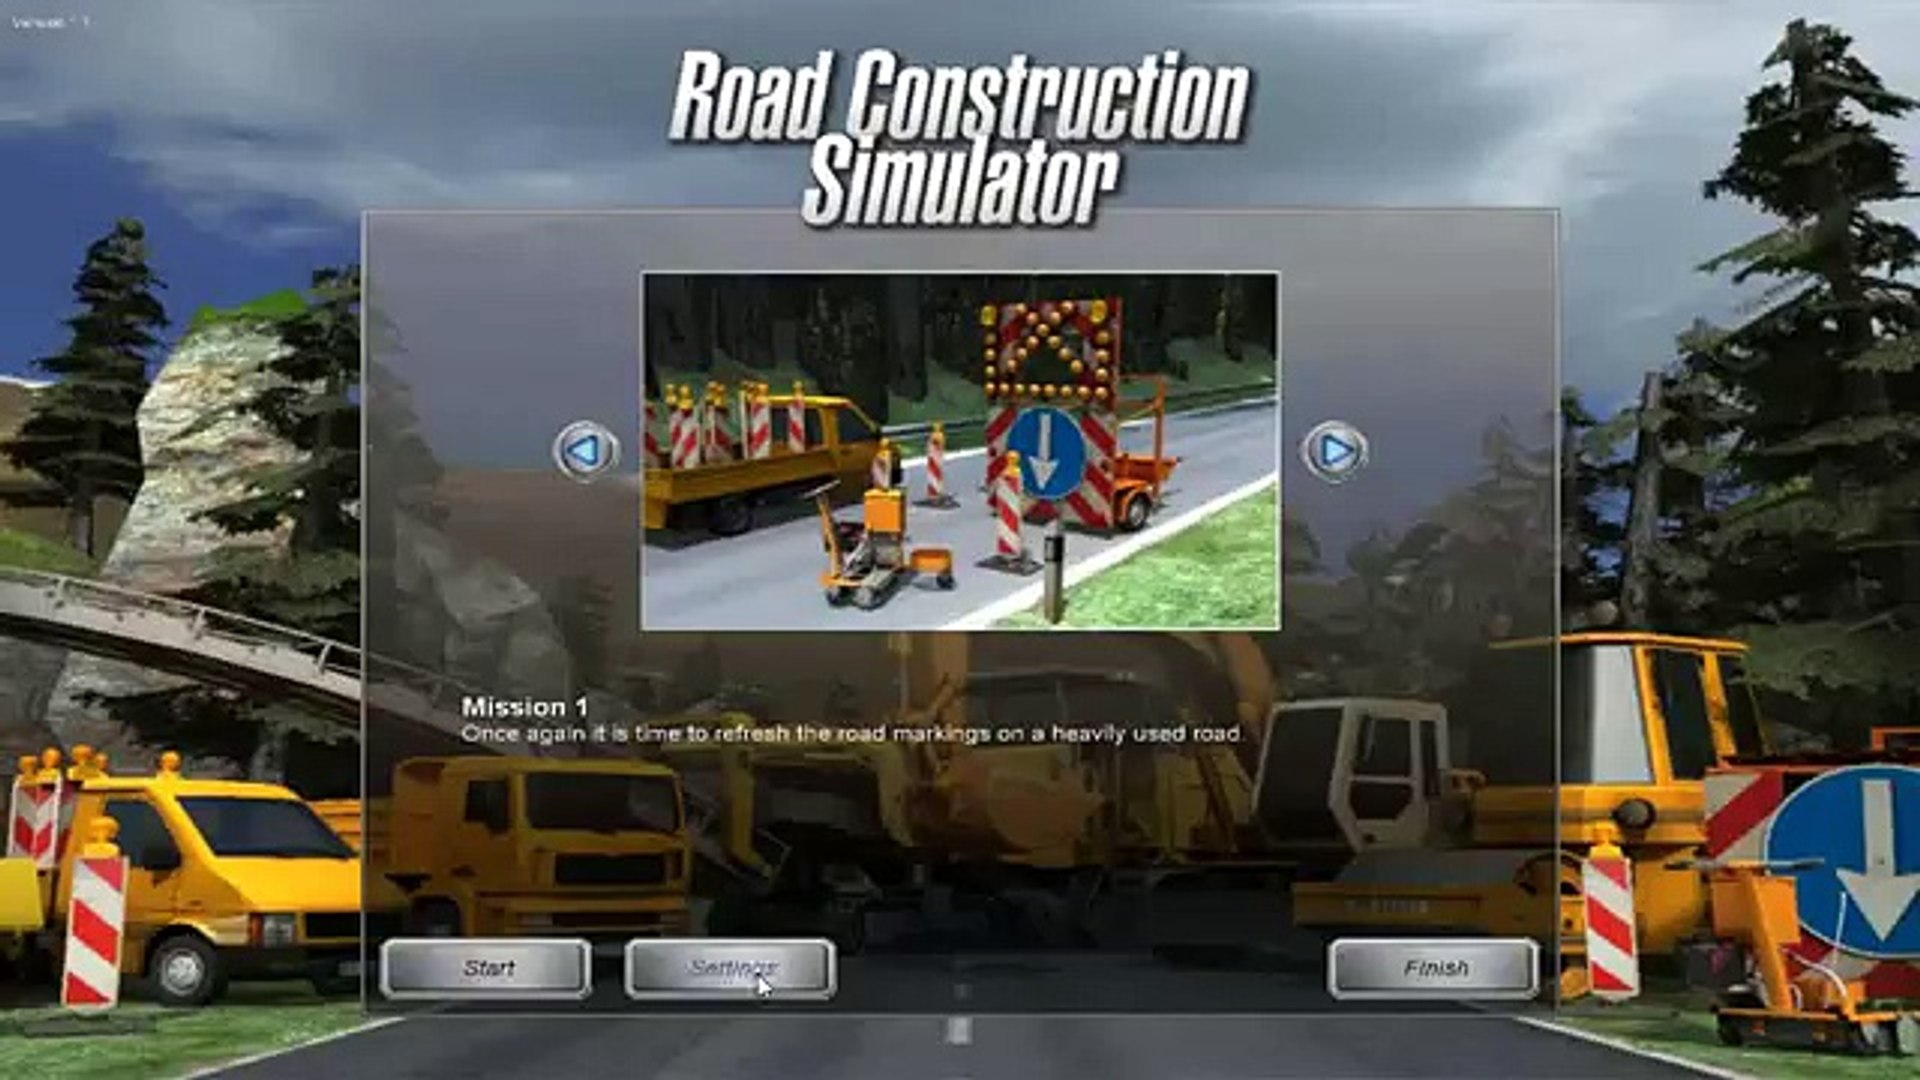 Road Construction Simulator new - Mission 1